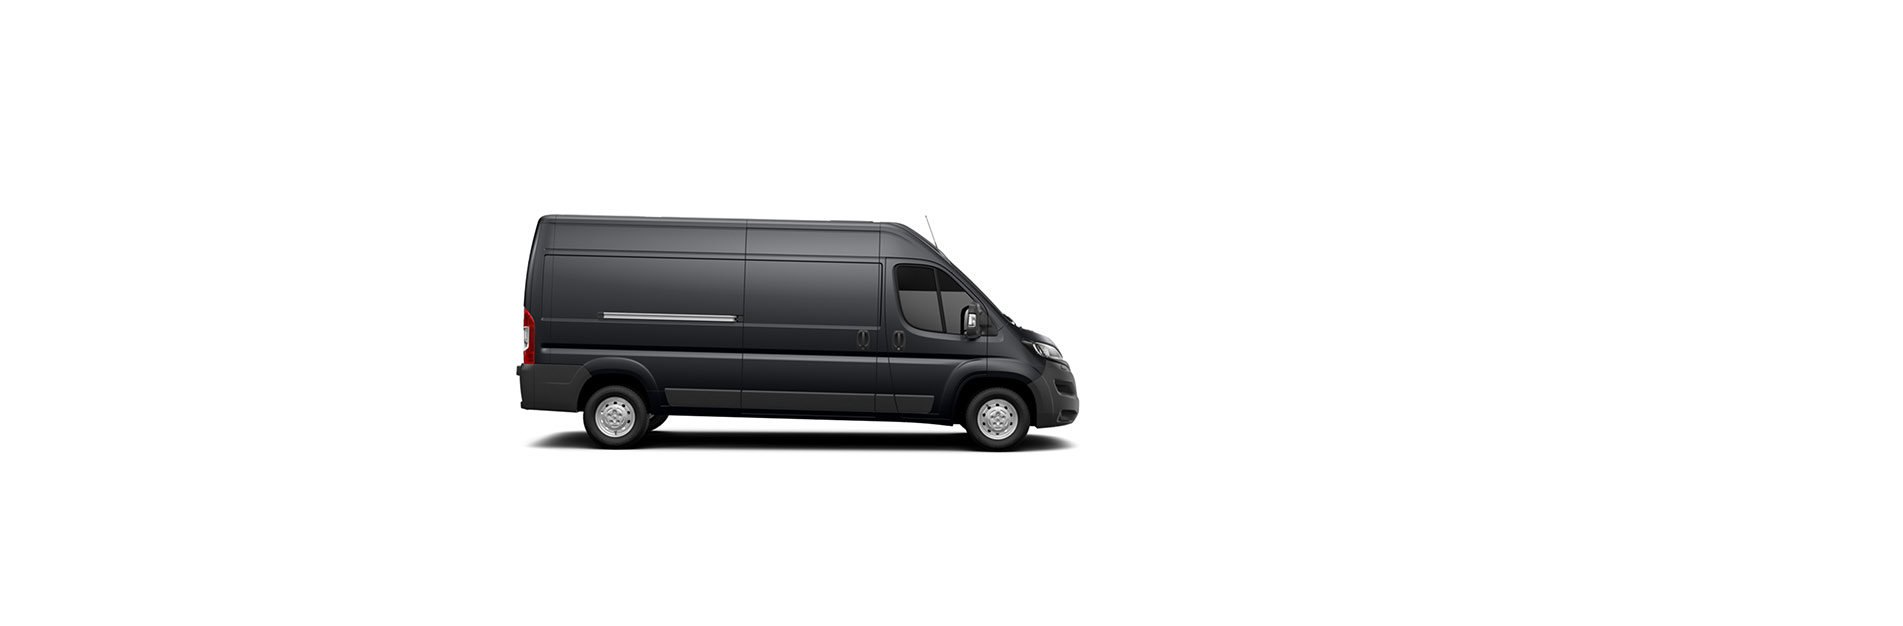 peugeot-boxer-van-new-commercial-sales-head